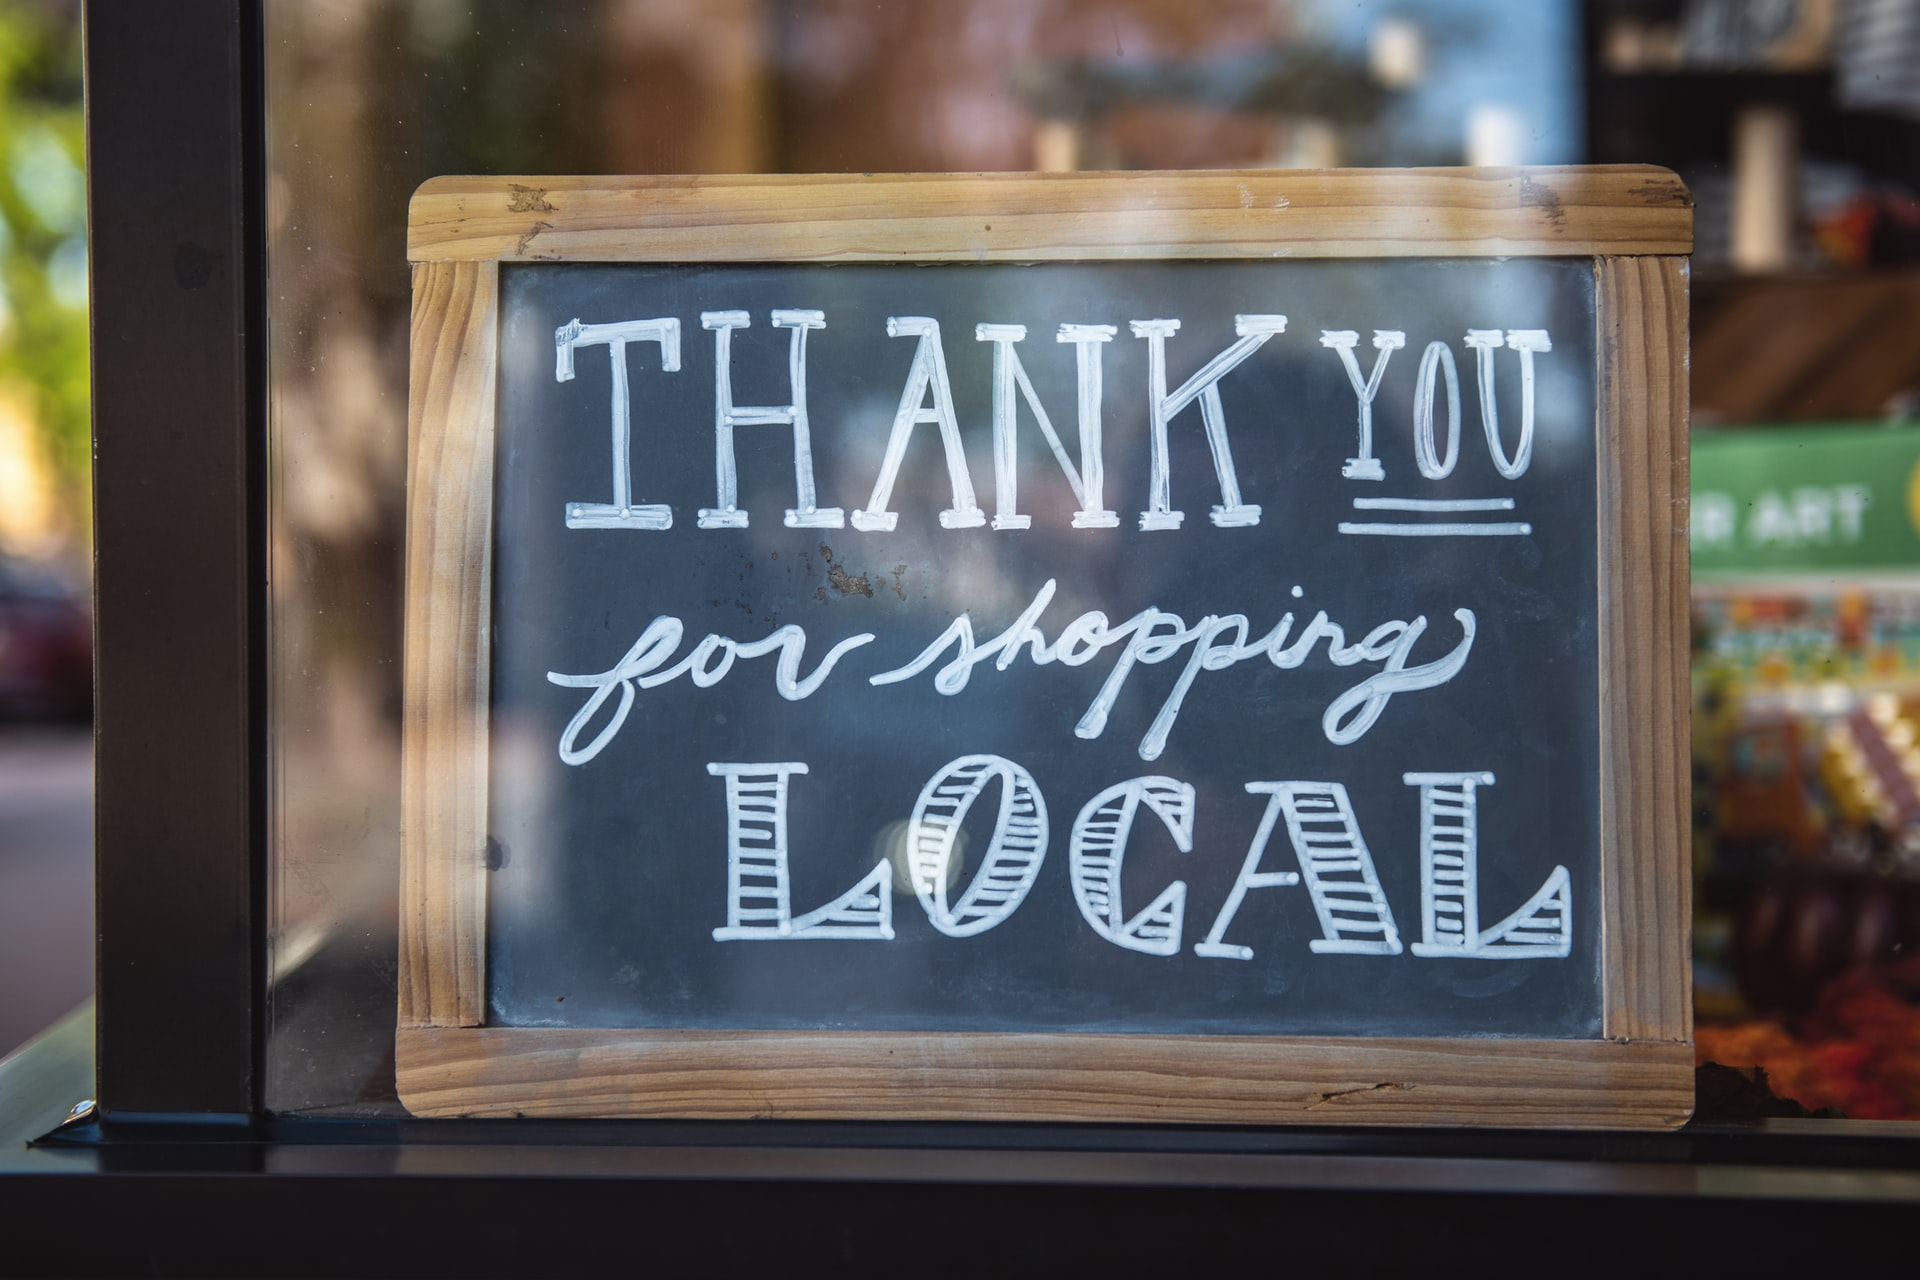 A sign in a shop window shows support for small businesses